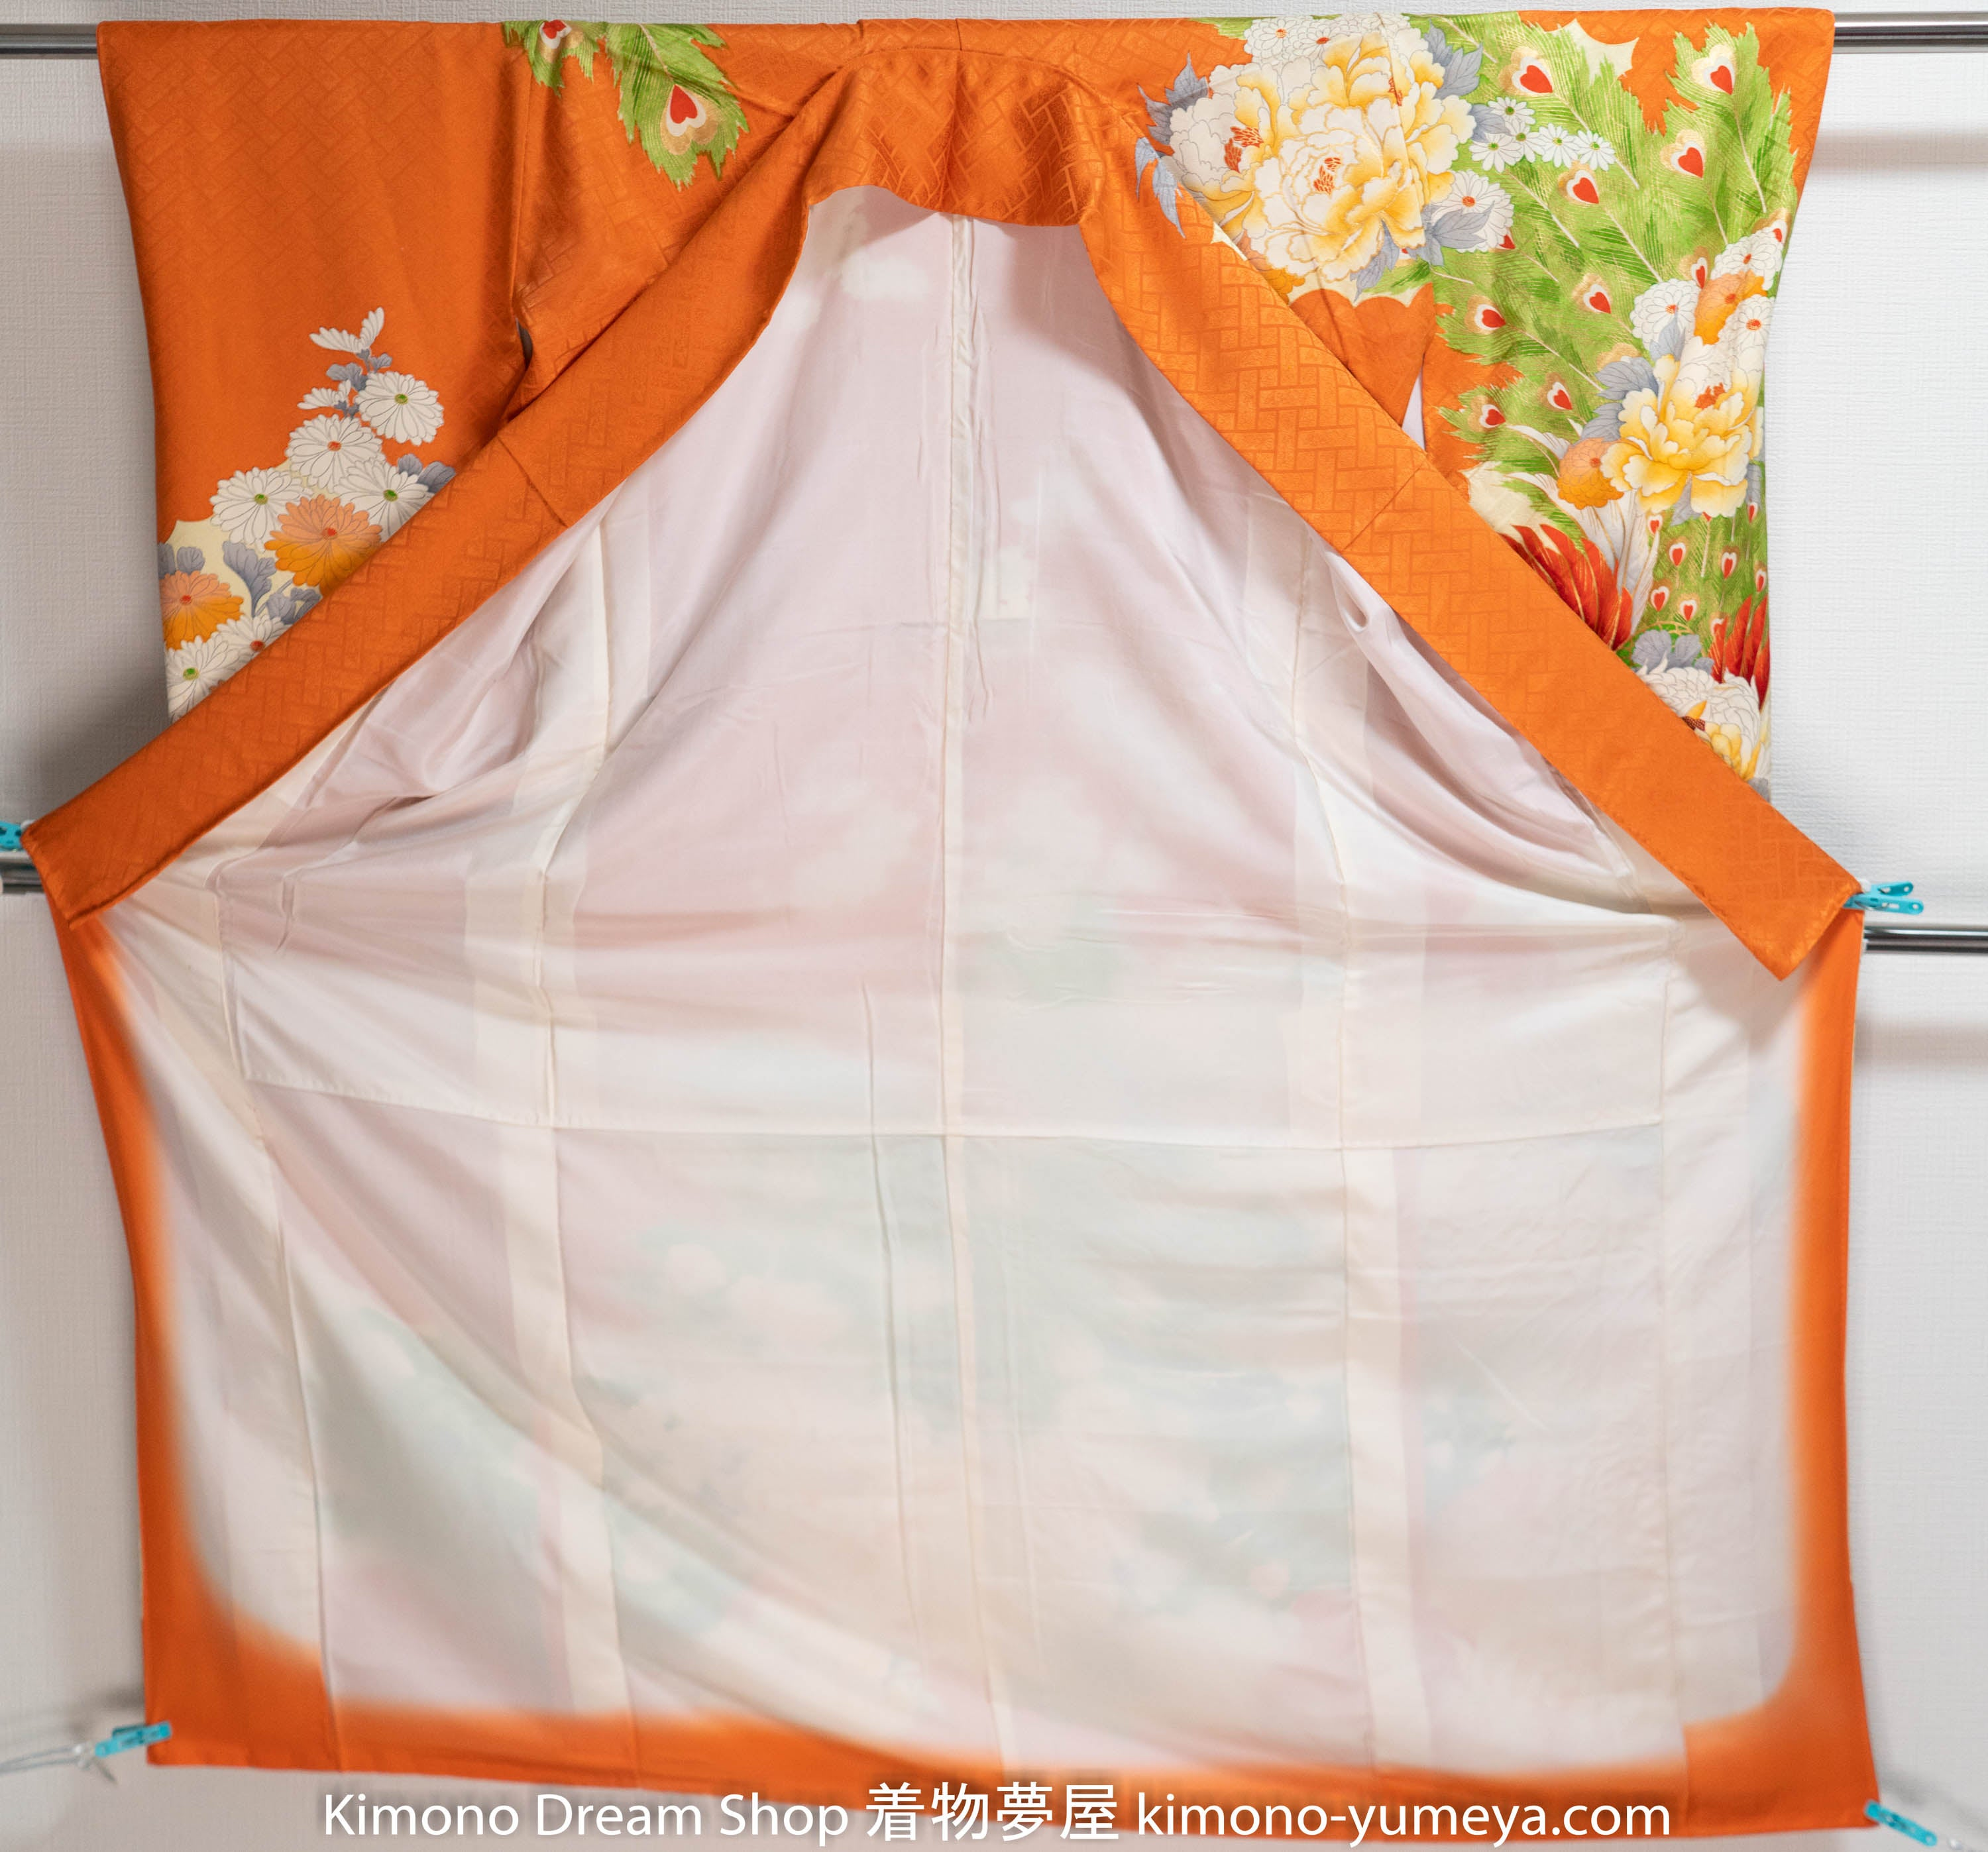 Orange Peacock Cherry Blossoms Springtime Silk Furisode Japanese Wedding Kimono - Gold Bird Animal